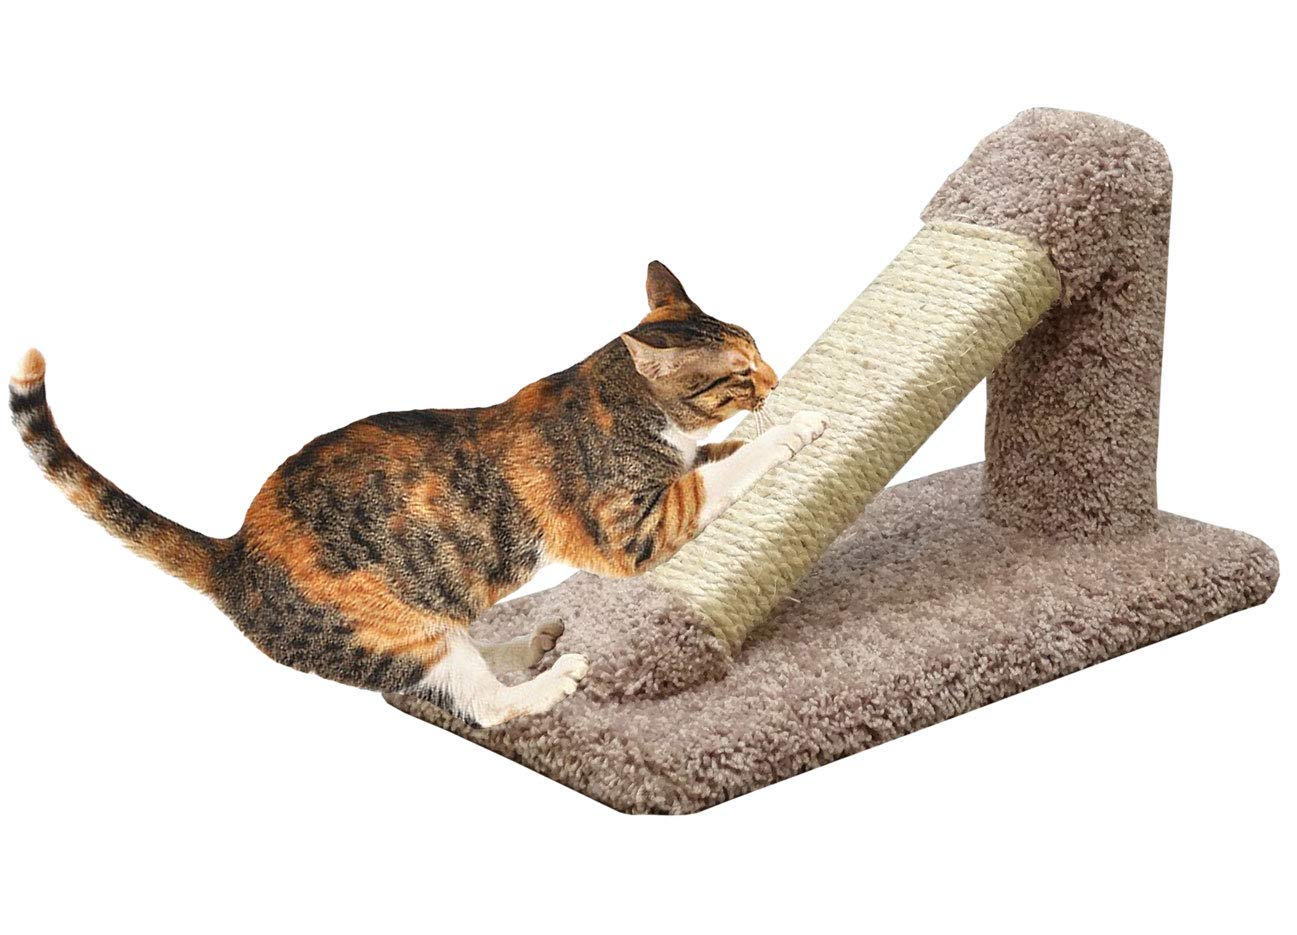 CozyCatFurniture Incline Cat Scratcher, Made in USA, Solid Wood Cat Scratching Post, Unoiled Sisal Rope and Thick Carpet, Brown Color by CozyCatFurniture